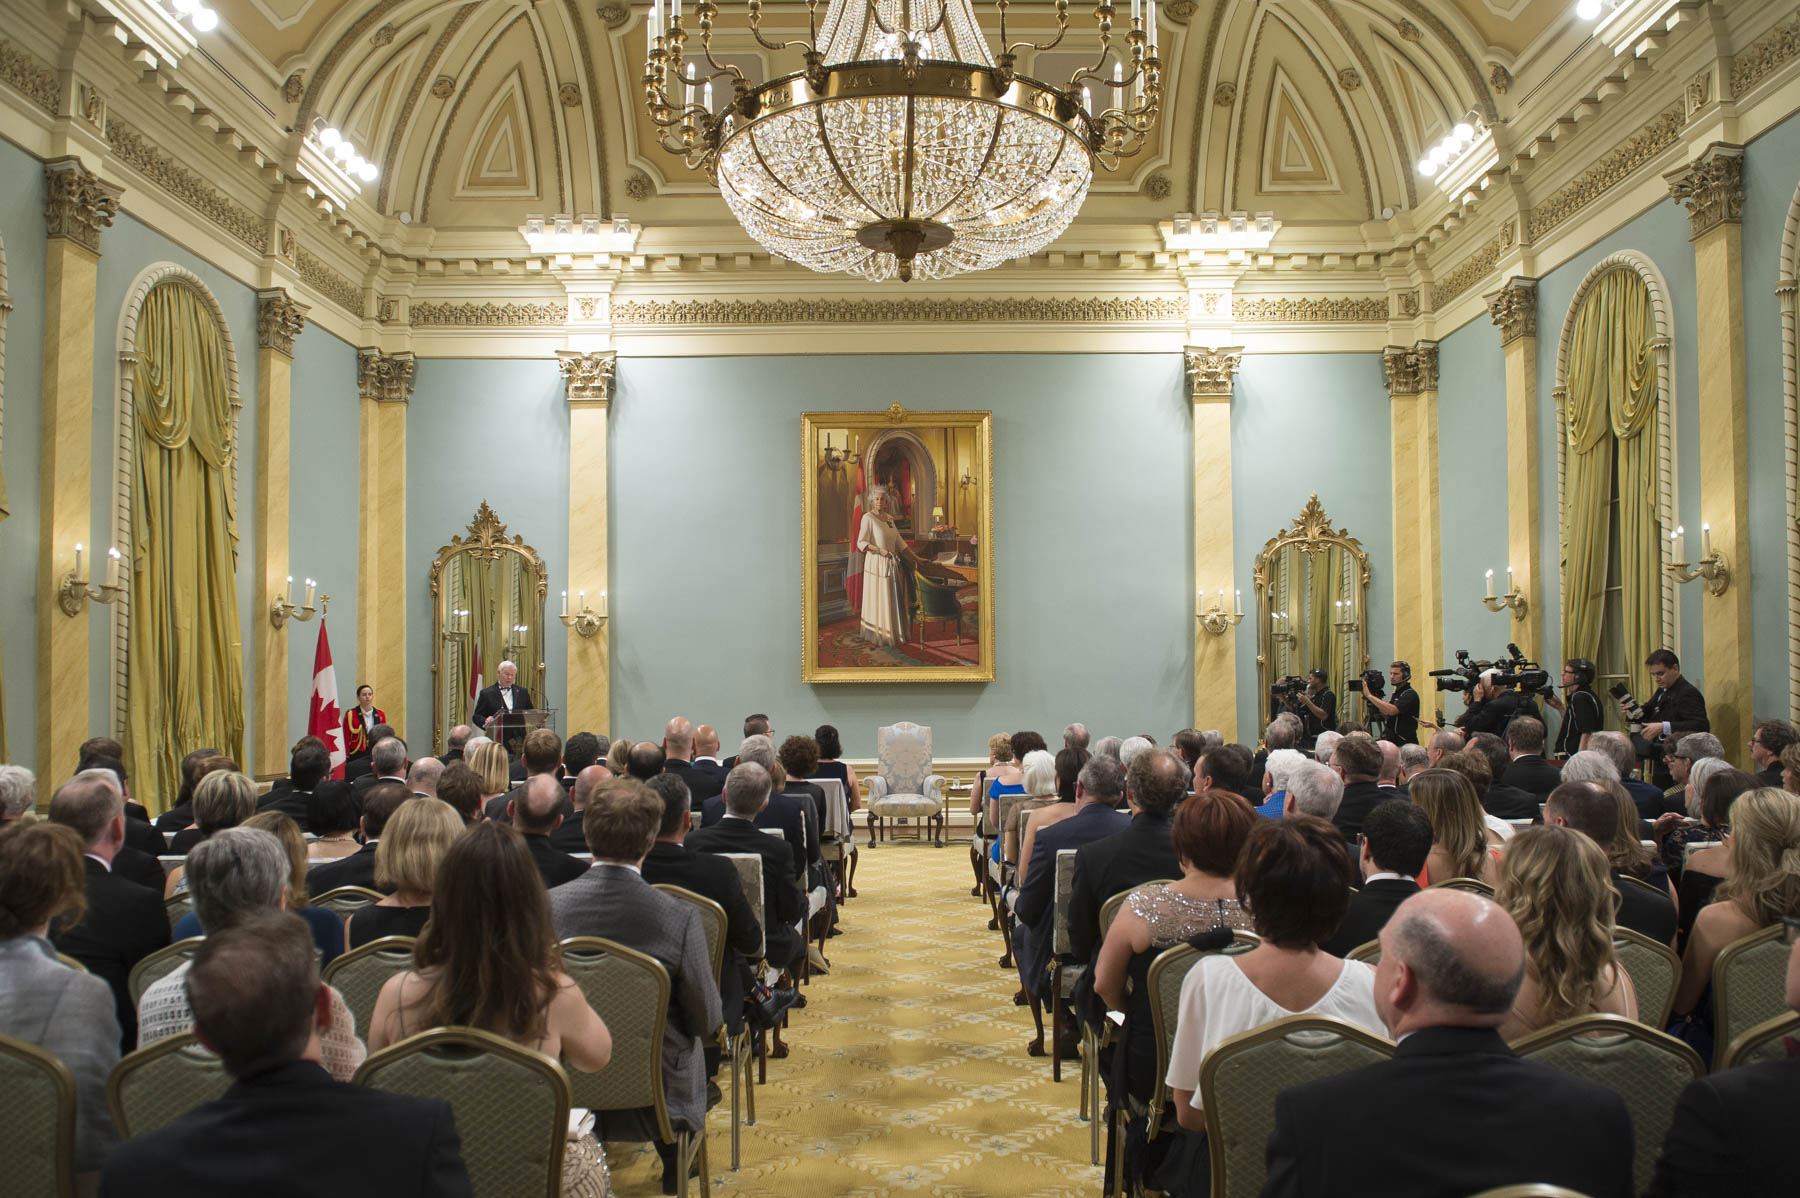 Their Excellencies the Right Honourable David Johnston, Governor General of Canada, and Mrs. Sharon Johnston hosted the presentation ceremony of the Michener Award for outstanding public service in journalism, and the Michener-Deacon Fellowships. The event took place at Rideau Hall on June 14, 2017.